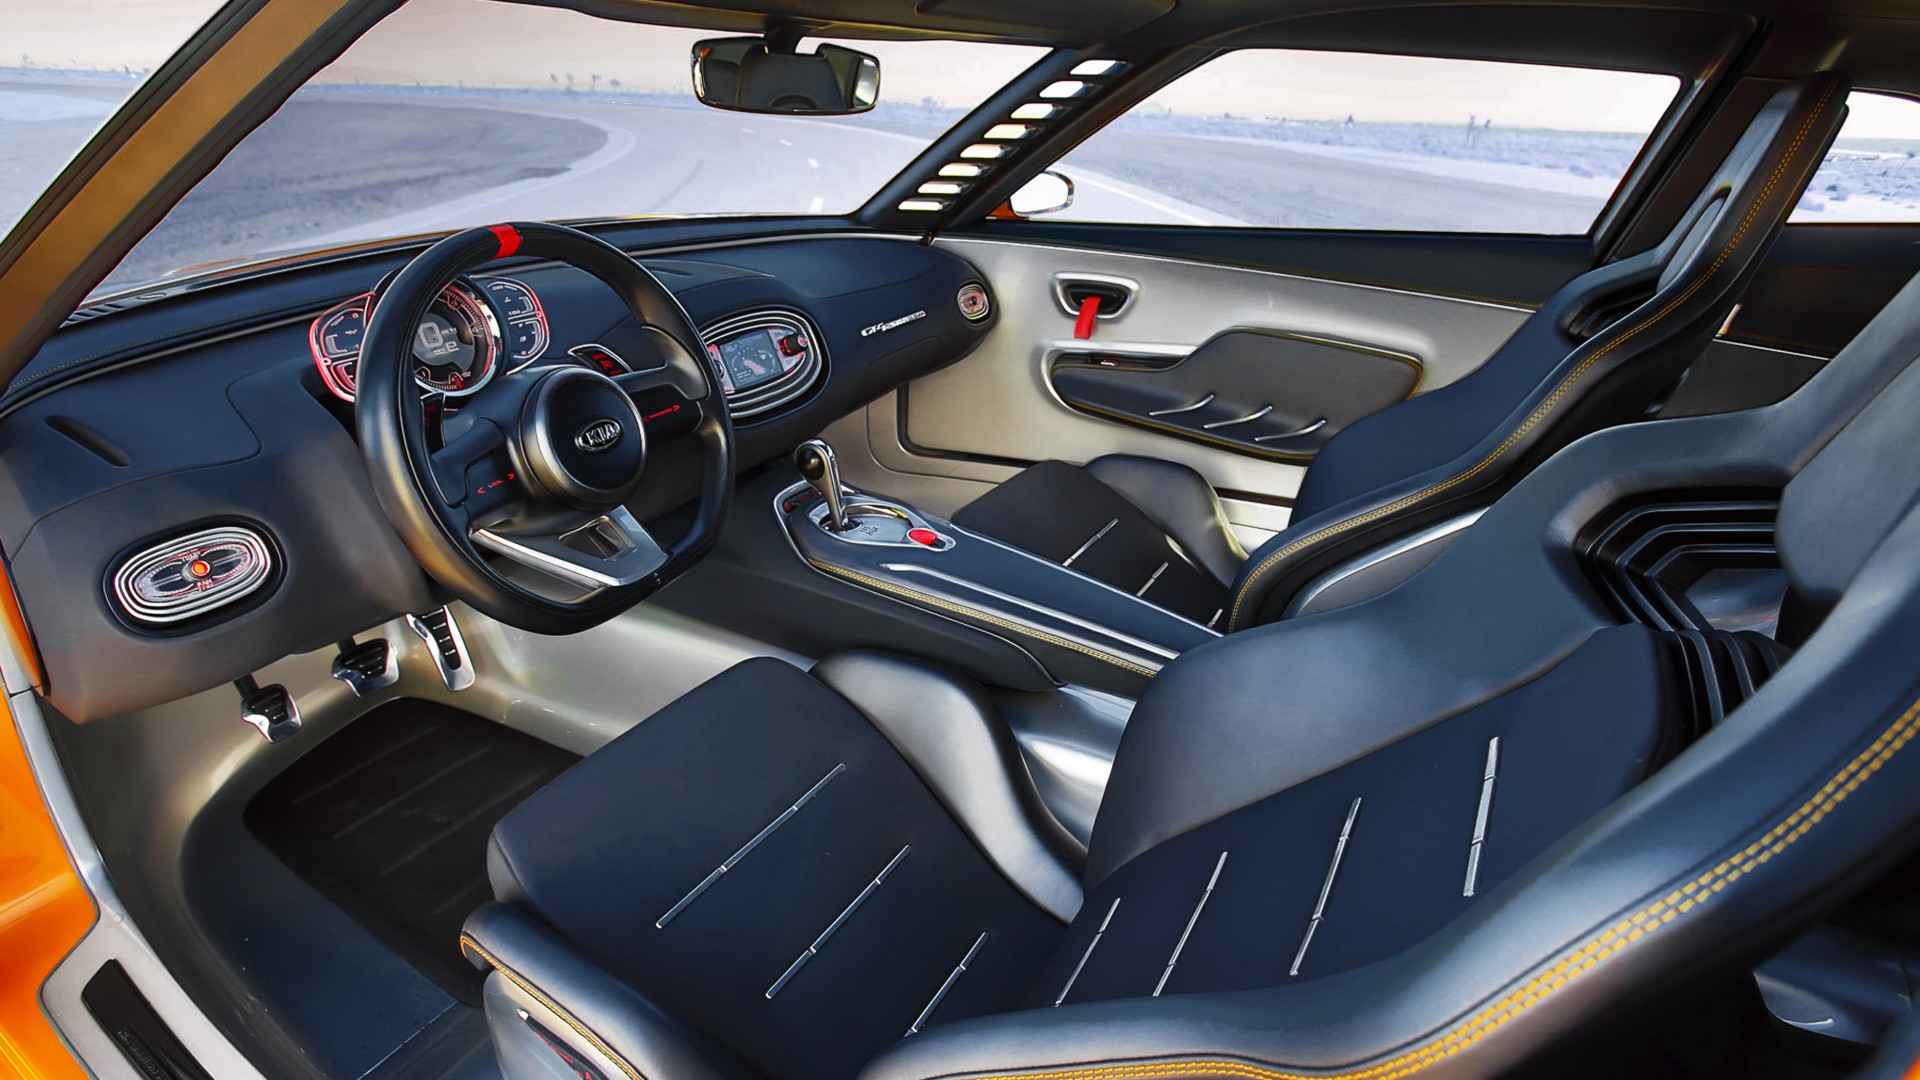 wallpaper kia gt4 stinger concept supercar luxury cars sports car yellow interior review. Black Bedroom Furniture Sets. Home Design Ideas